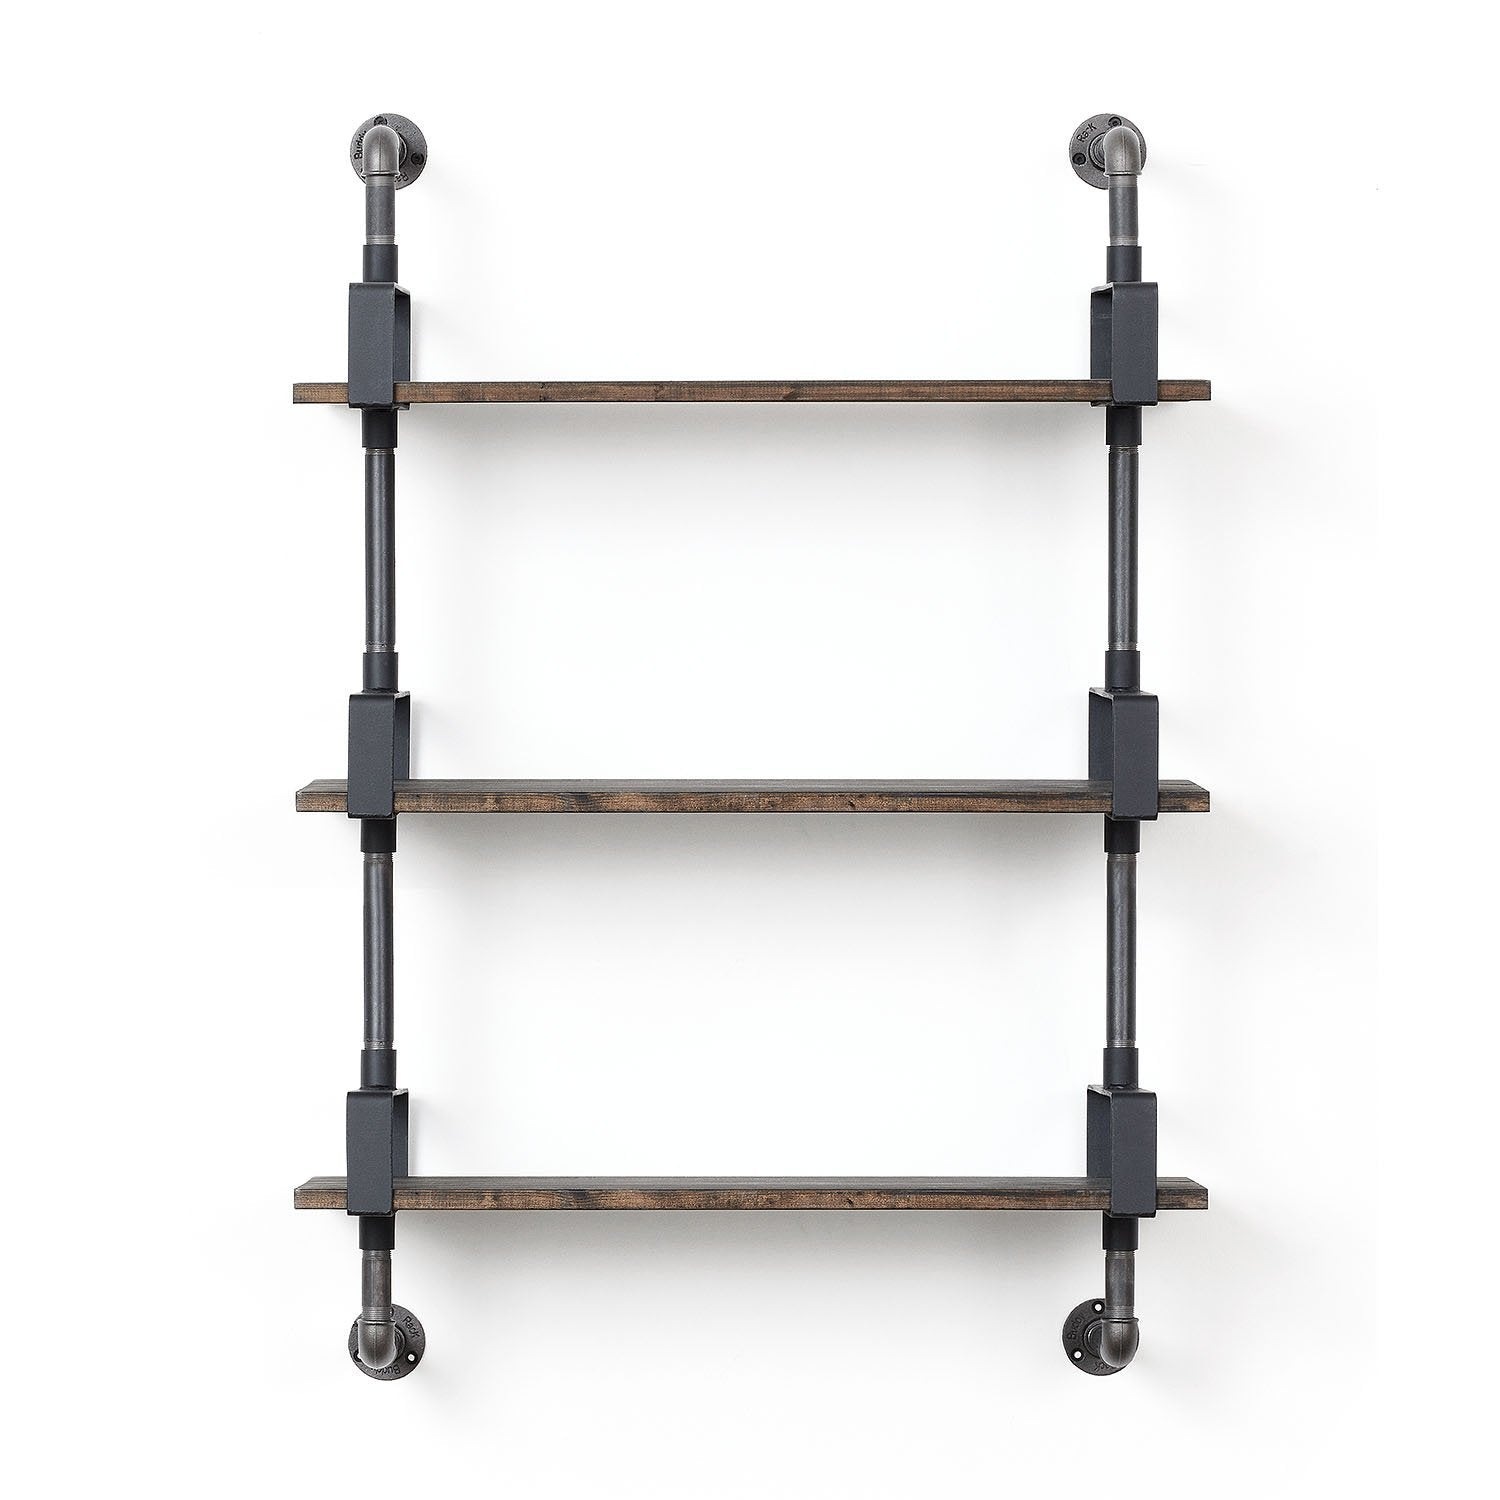 RackBuddy Shelfie System with three wooden shelves